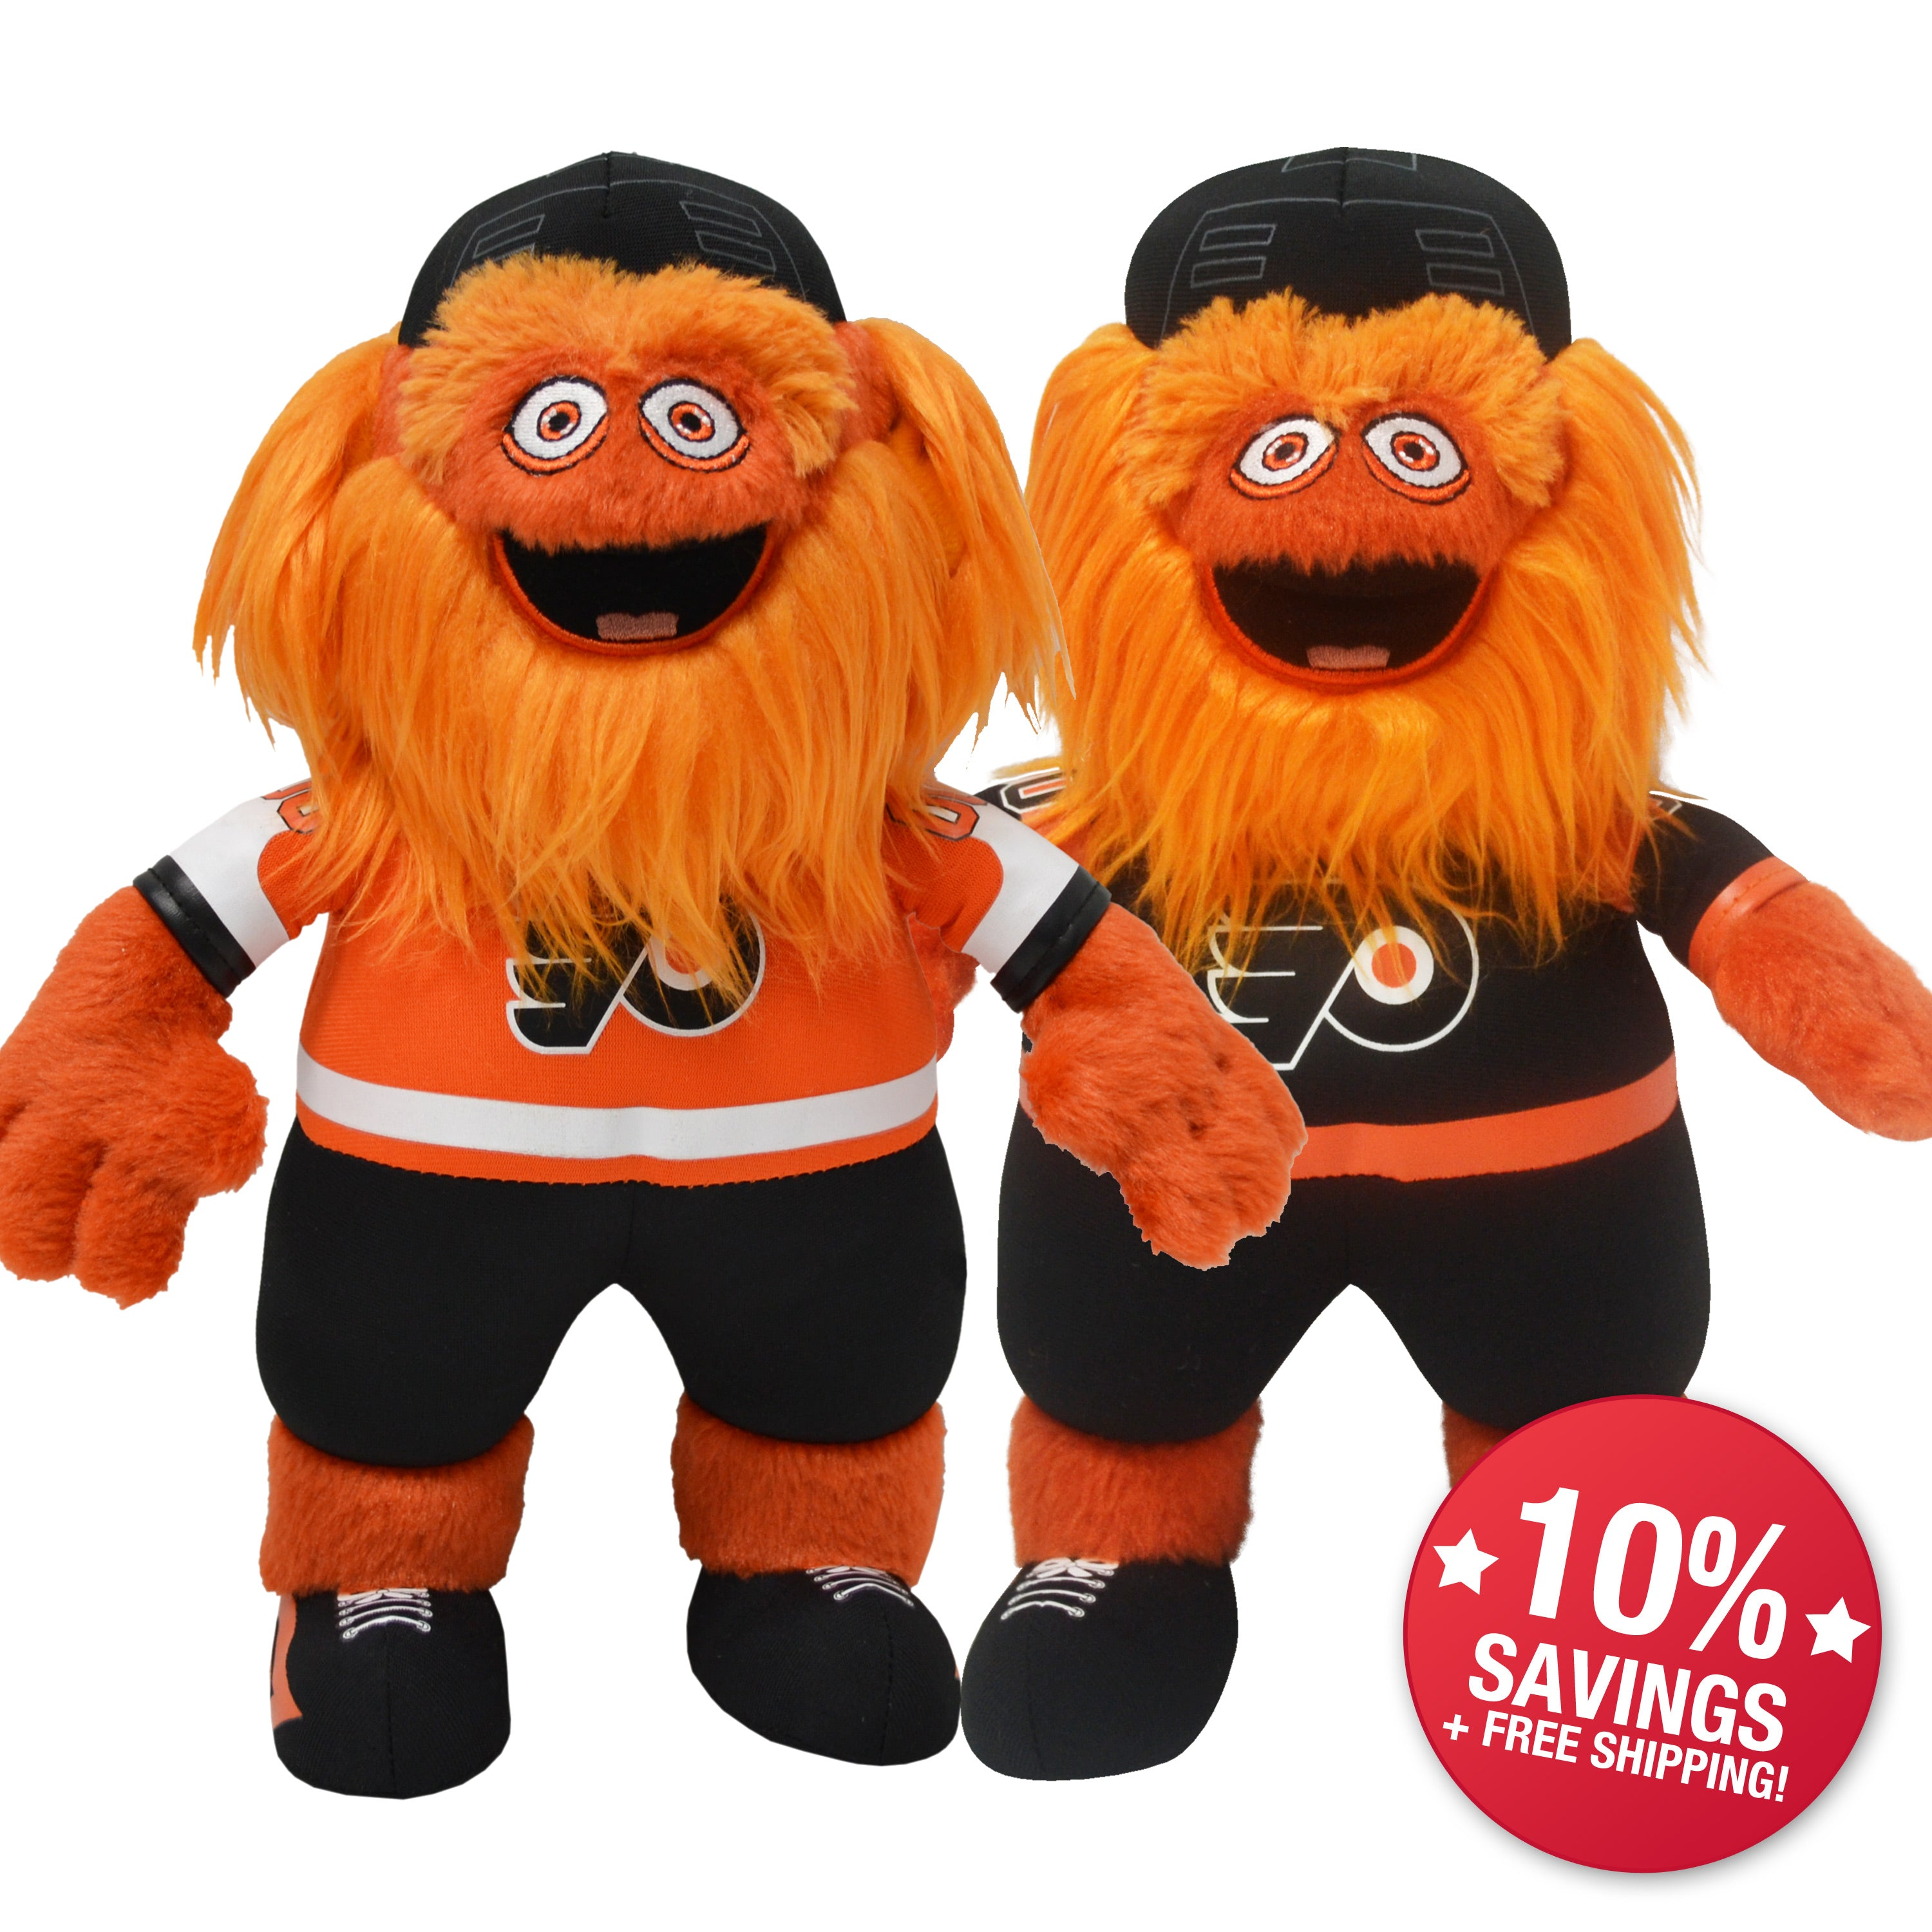 3beeb8b52 Philadelphia Flyers® Gritty Duo-Home and Alt Uniform 10